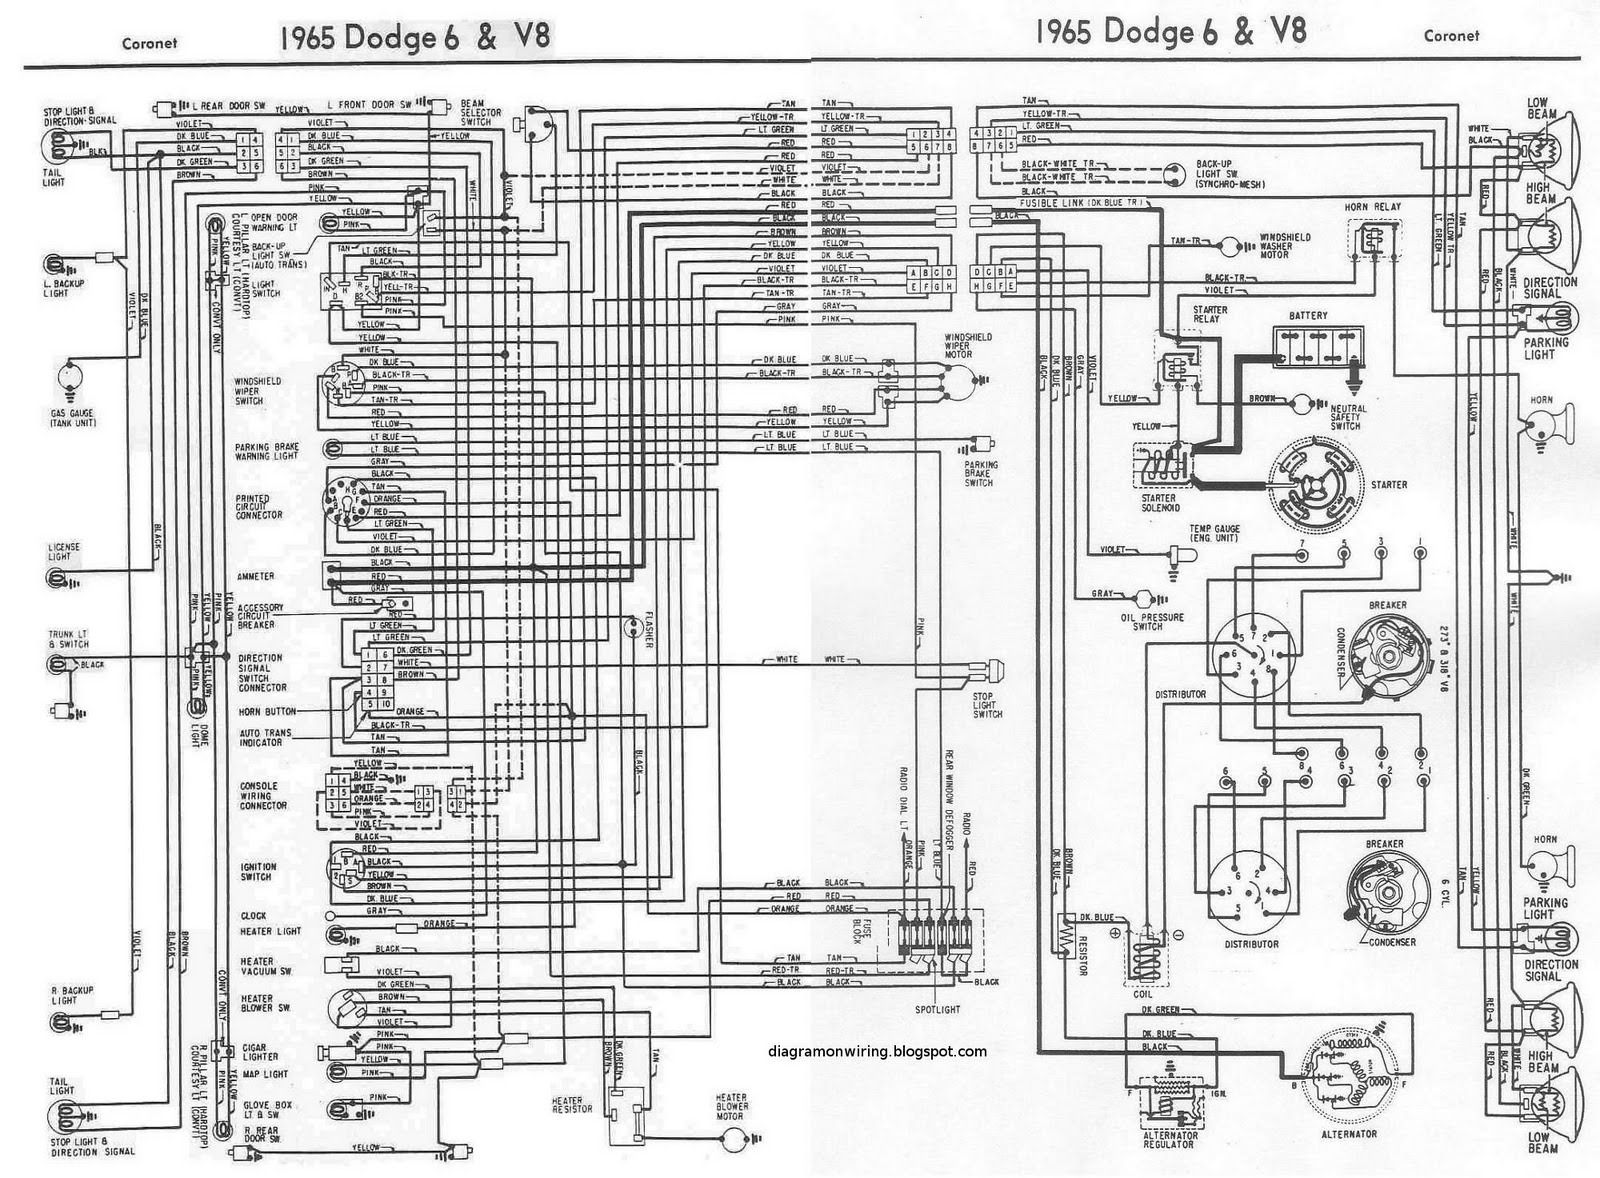 medium resolution of dodge alternator wiring 1965 electrical wiring diagram1967 dodge alternator wiring wiring diagram repair guides1966 plymouth alternator